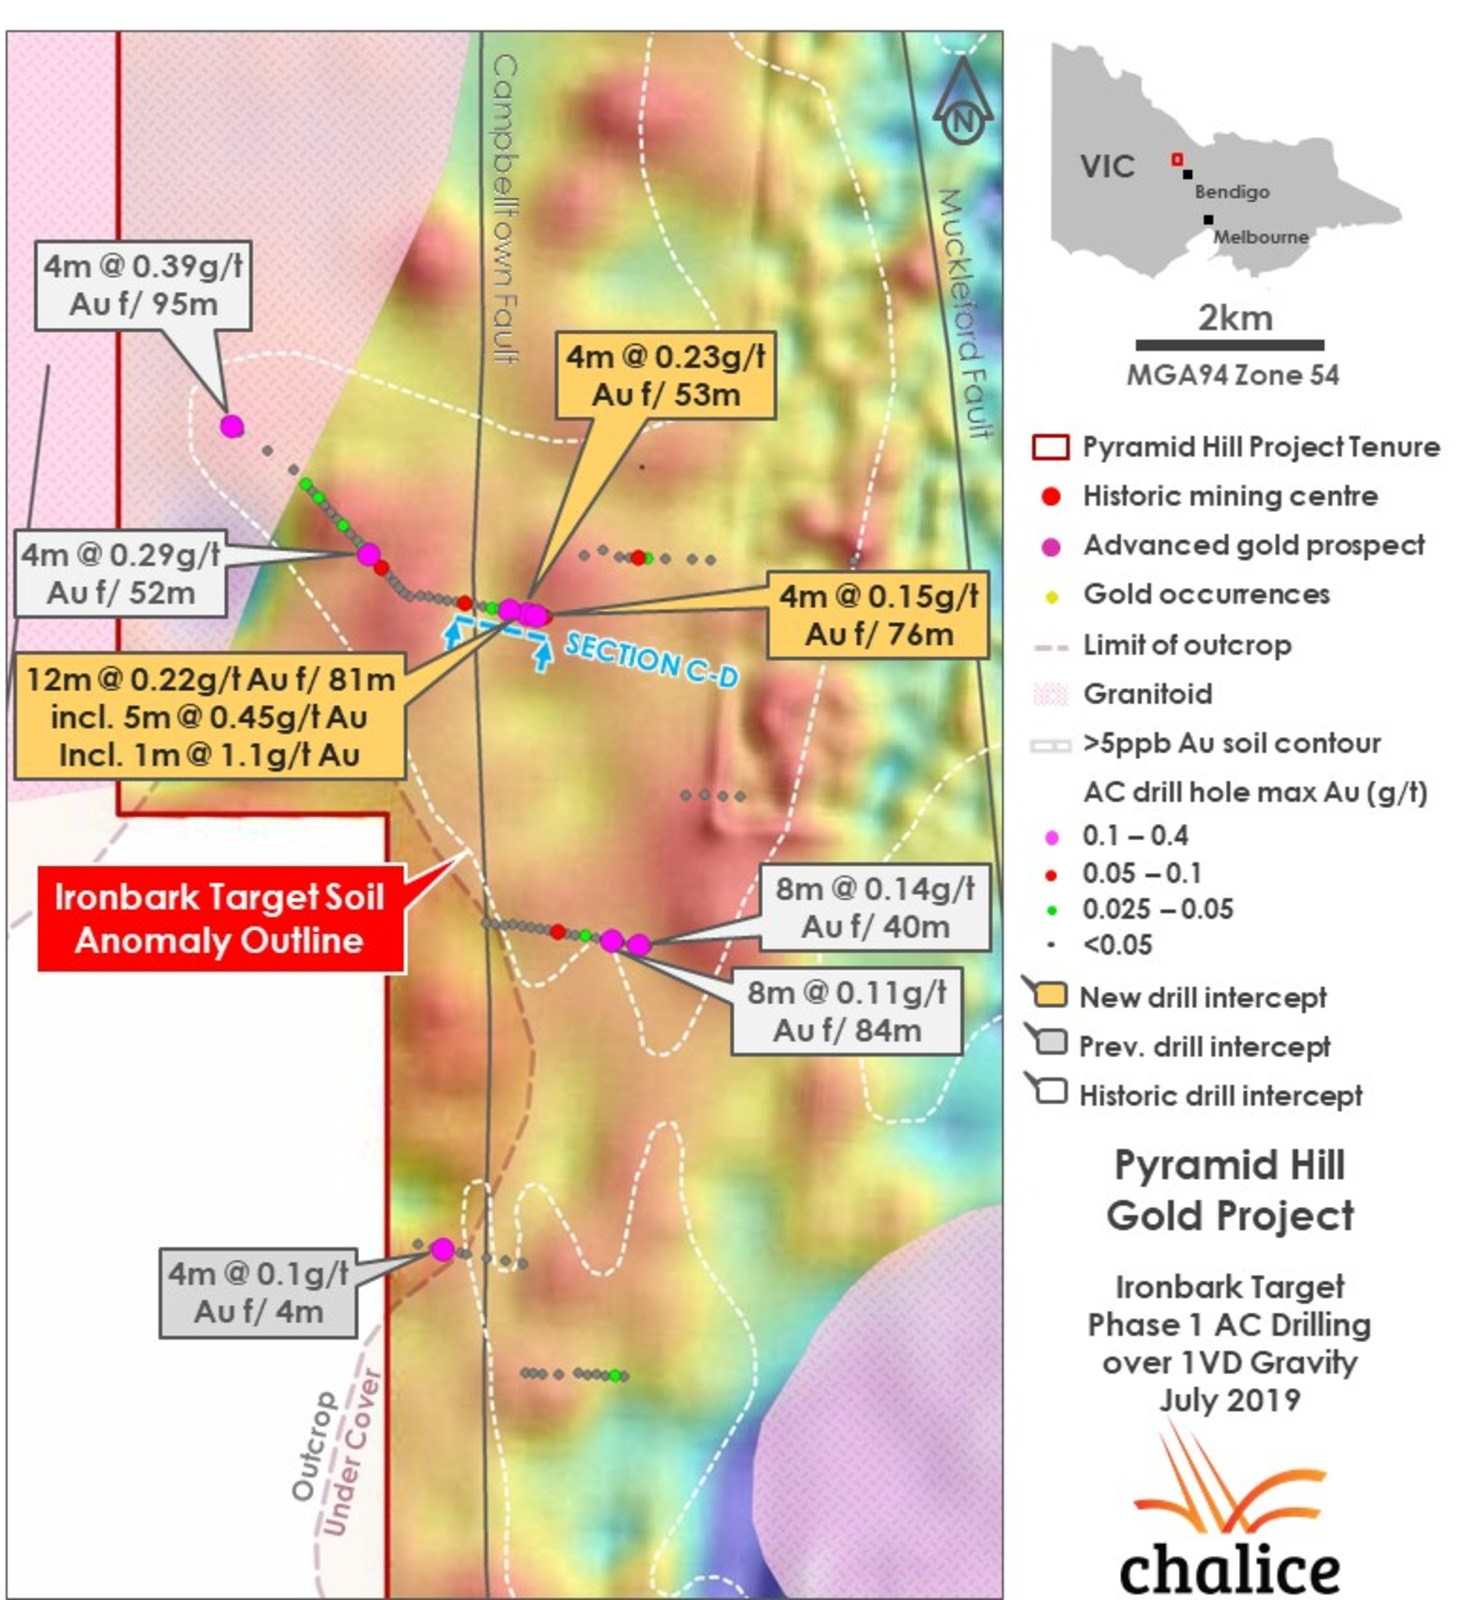 Figure 5. Ironbark Target Phase 1 AC drilling and soil geochemistry results over 1VD gravity geophysics.